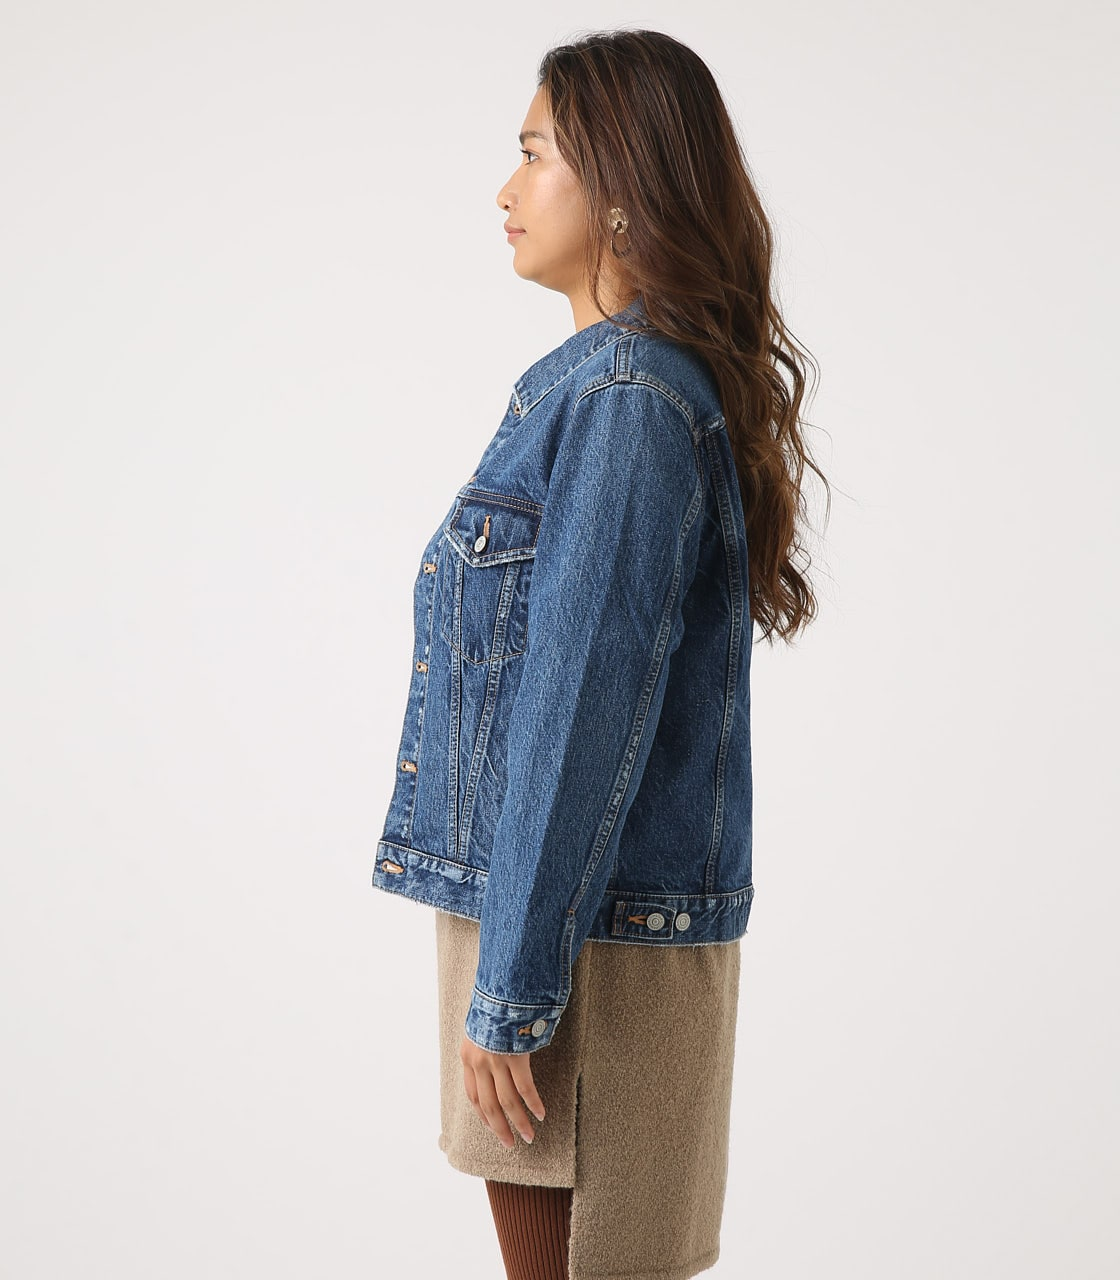 【AZUL BY MOUSSY】DENIM JACKET 詳細画像 BLU 6